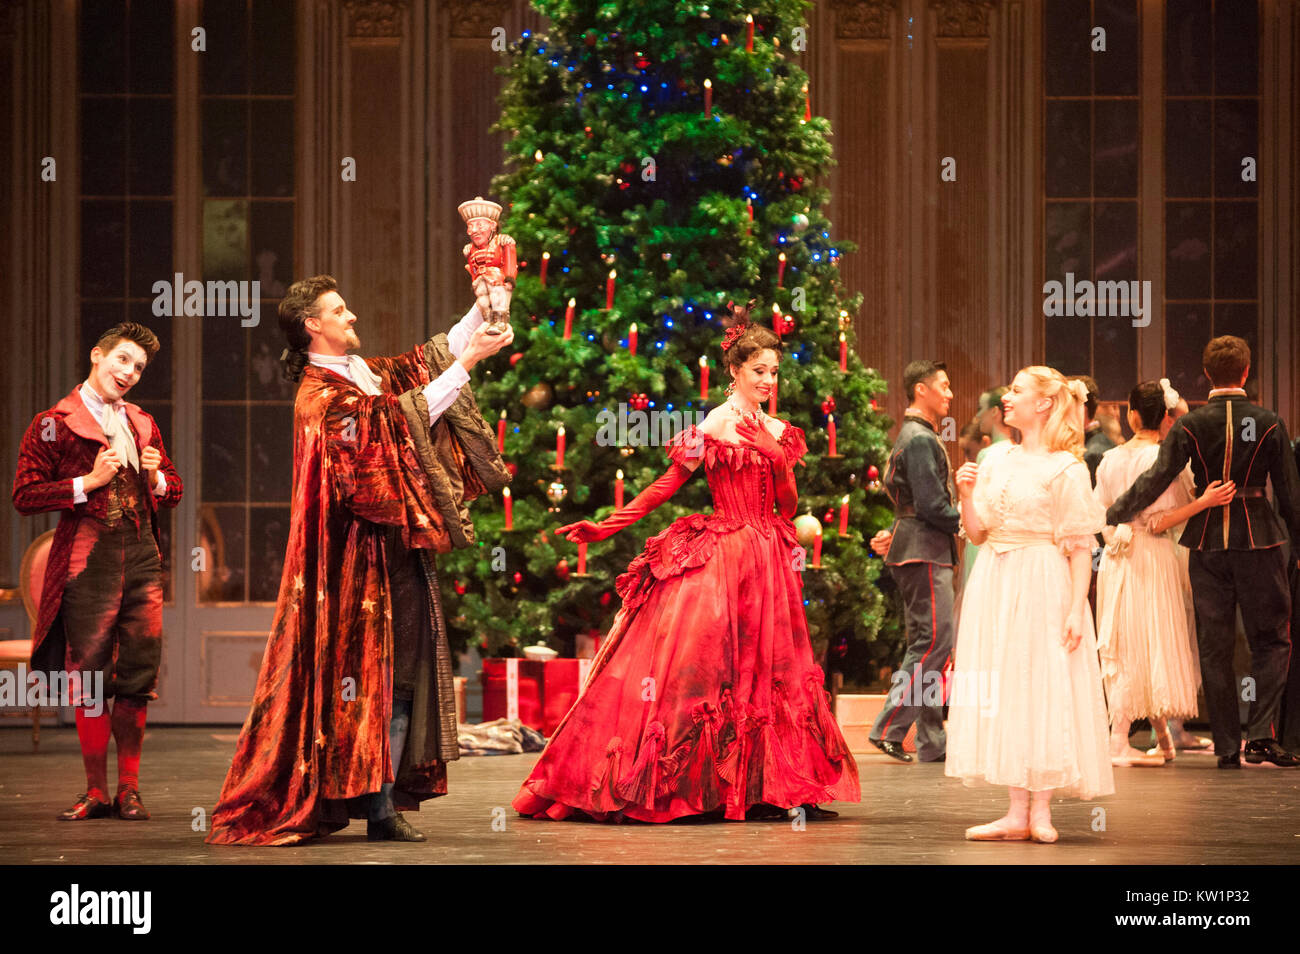 Birmingham Royal Ballet brings its Christmas favorite, The Nutcracker, to the Royal Albert Hall for the first time, - Stock Image